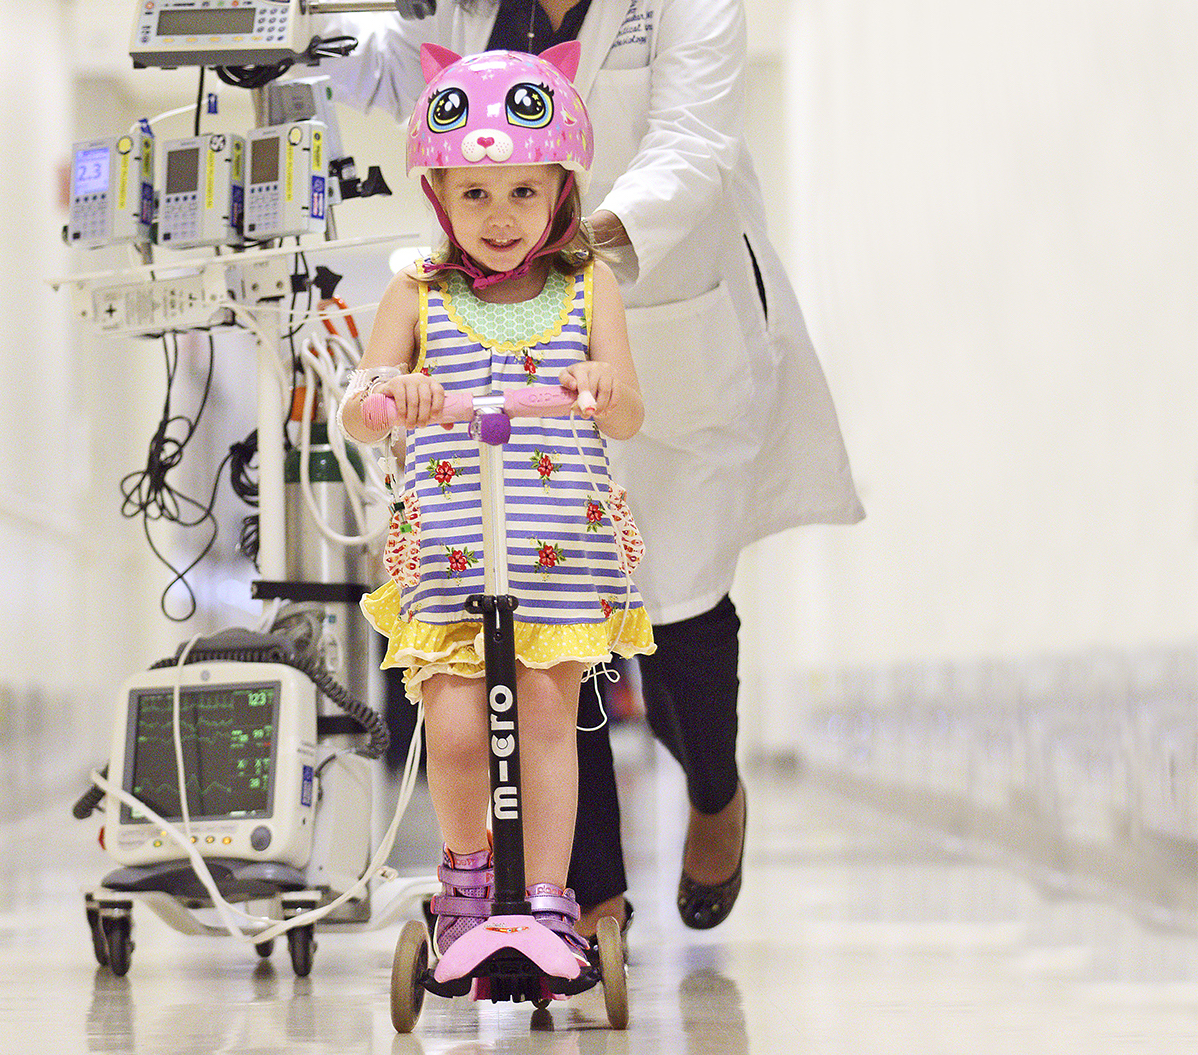 20 Top Children's Hospitals in Innovation and Technology | Parents